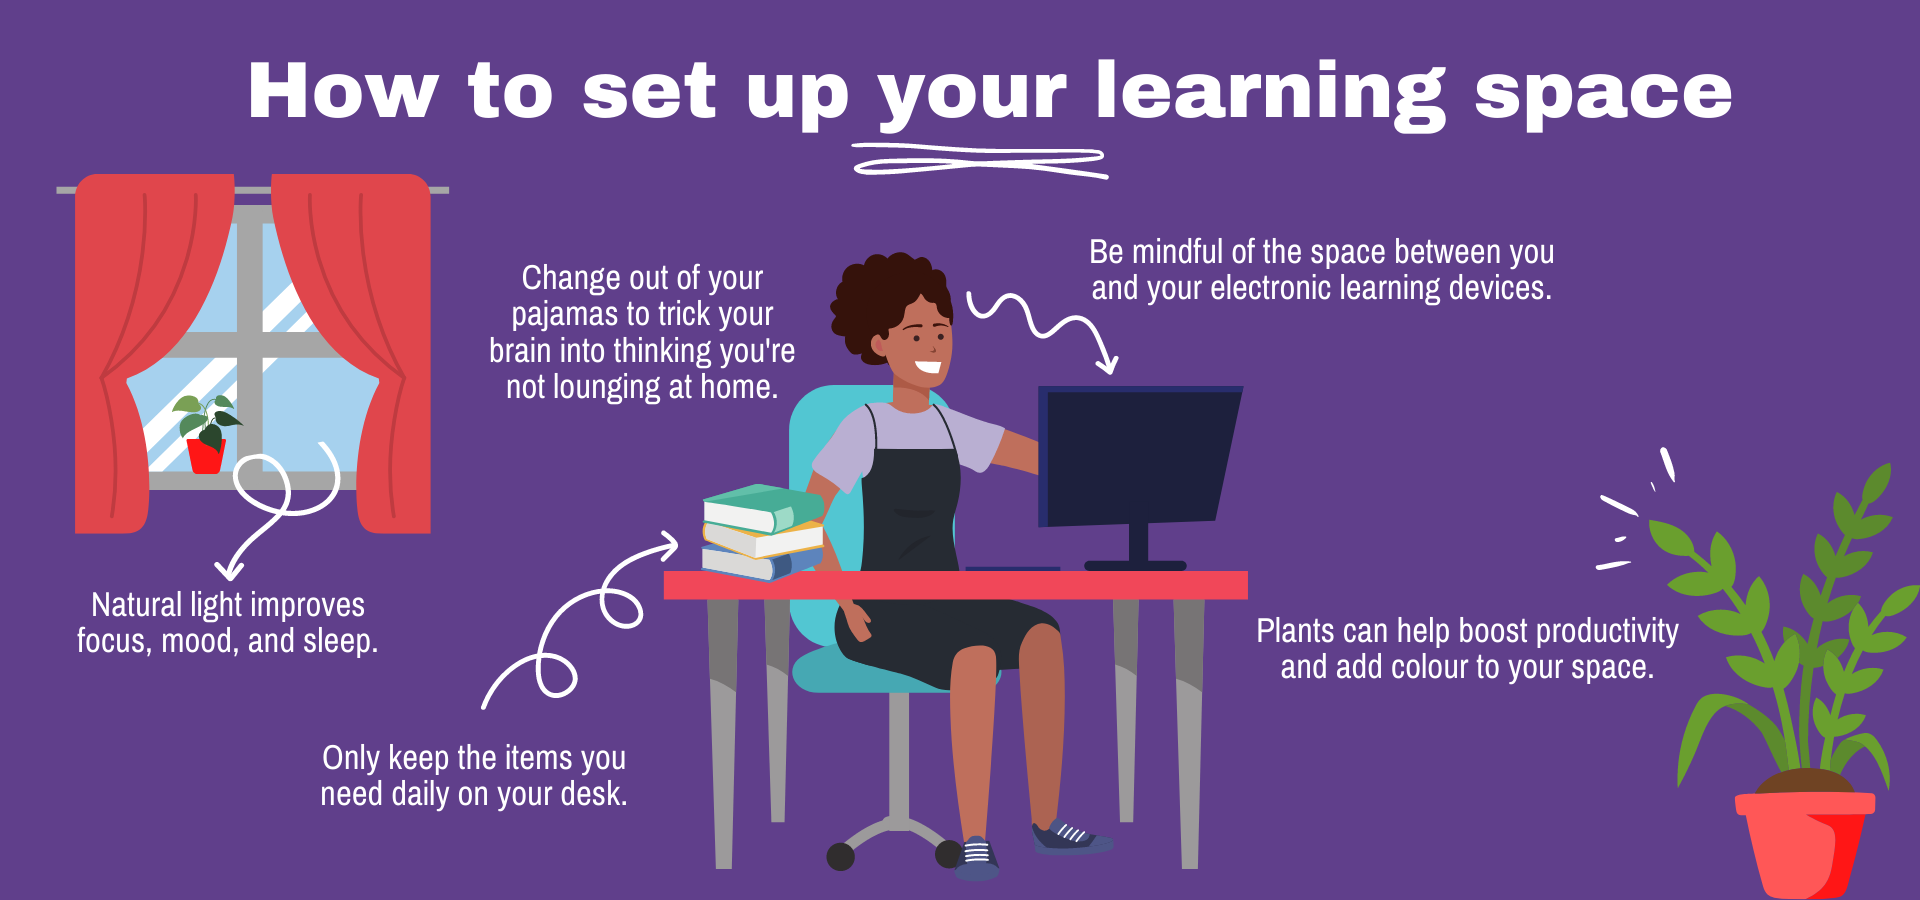 how to set up learning spaces